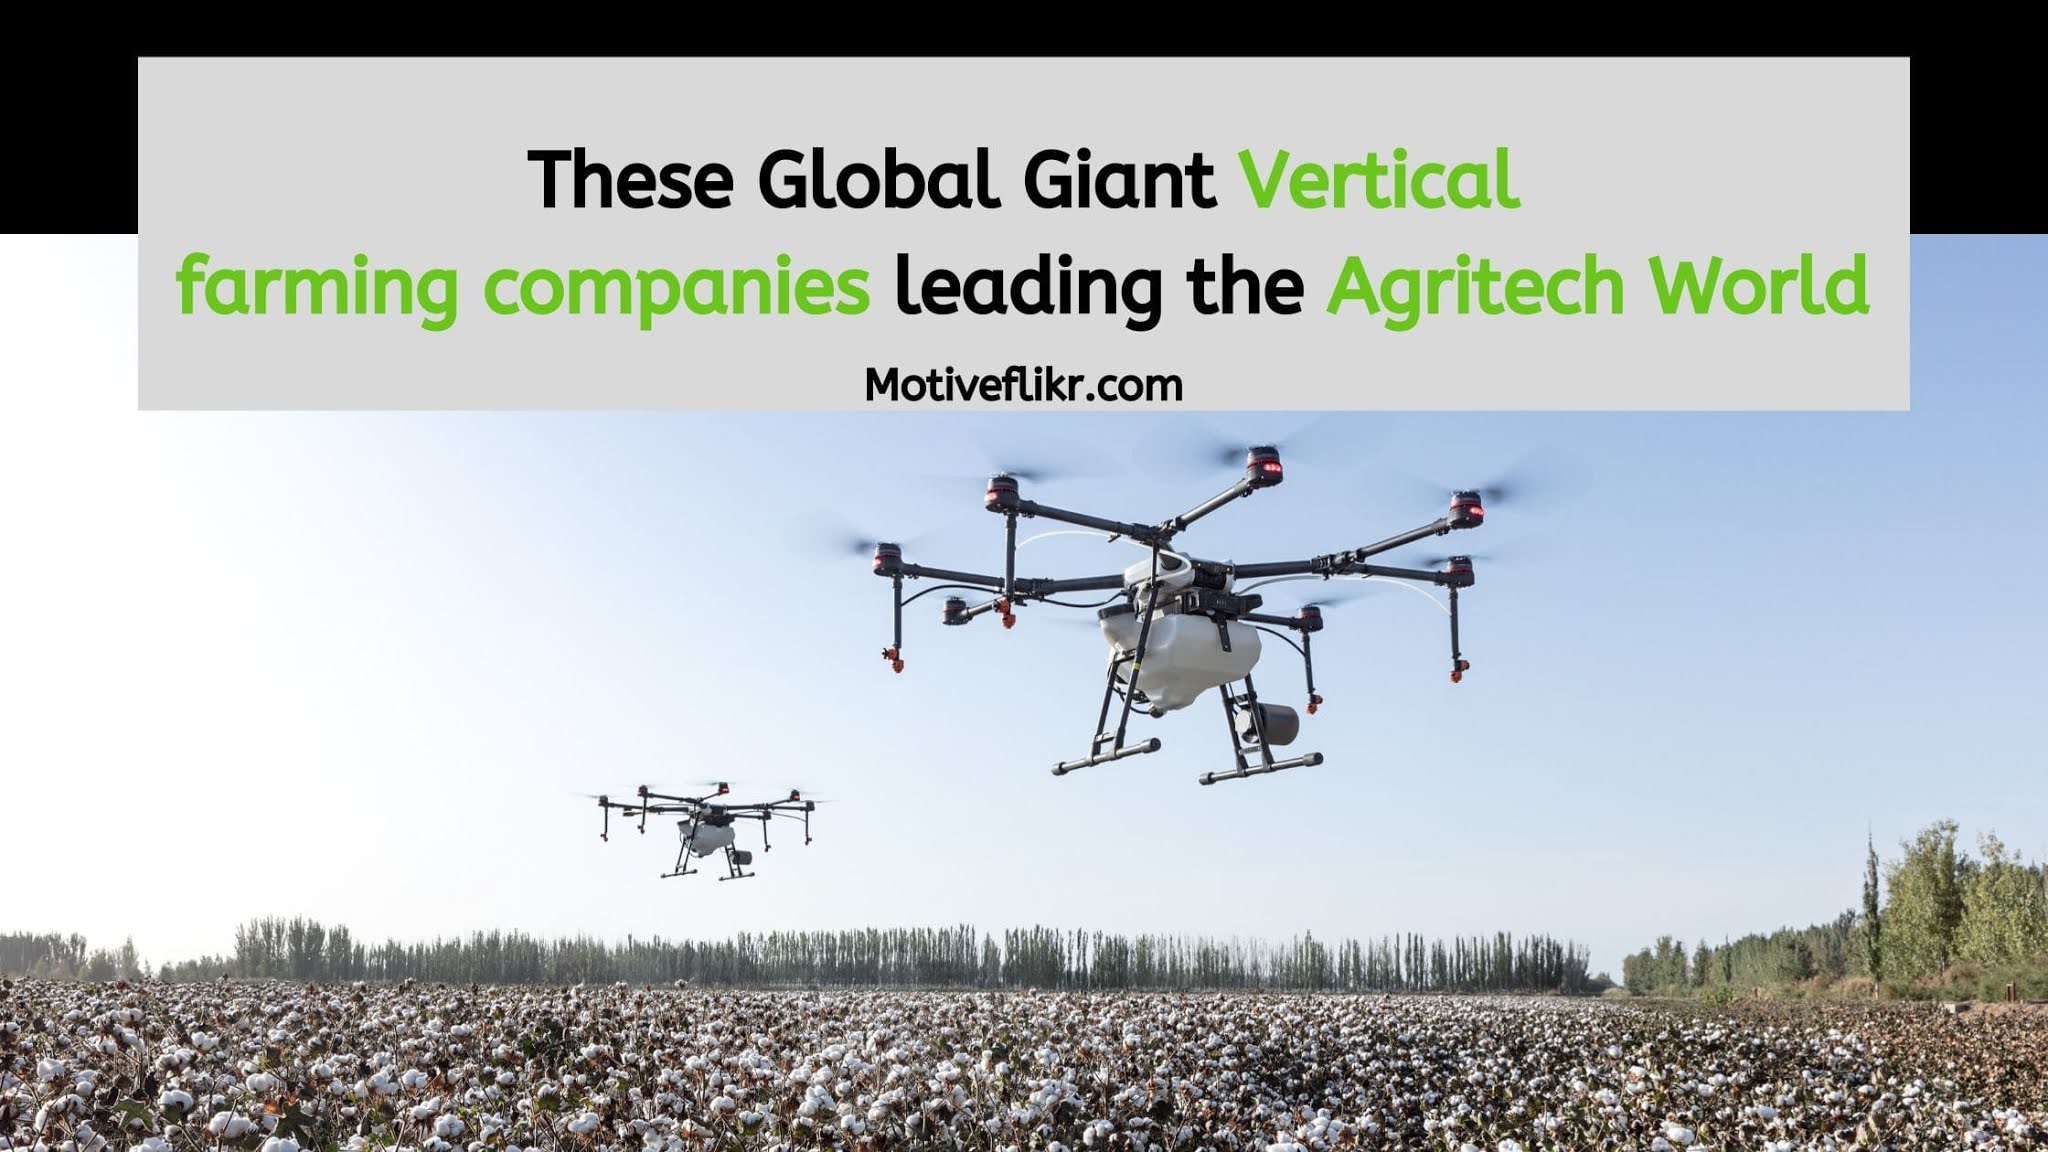 These Global Giant Vertical farming companies leading the Agritech World